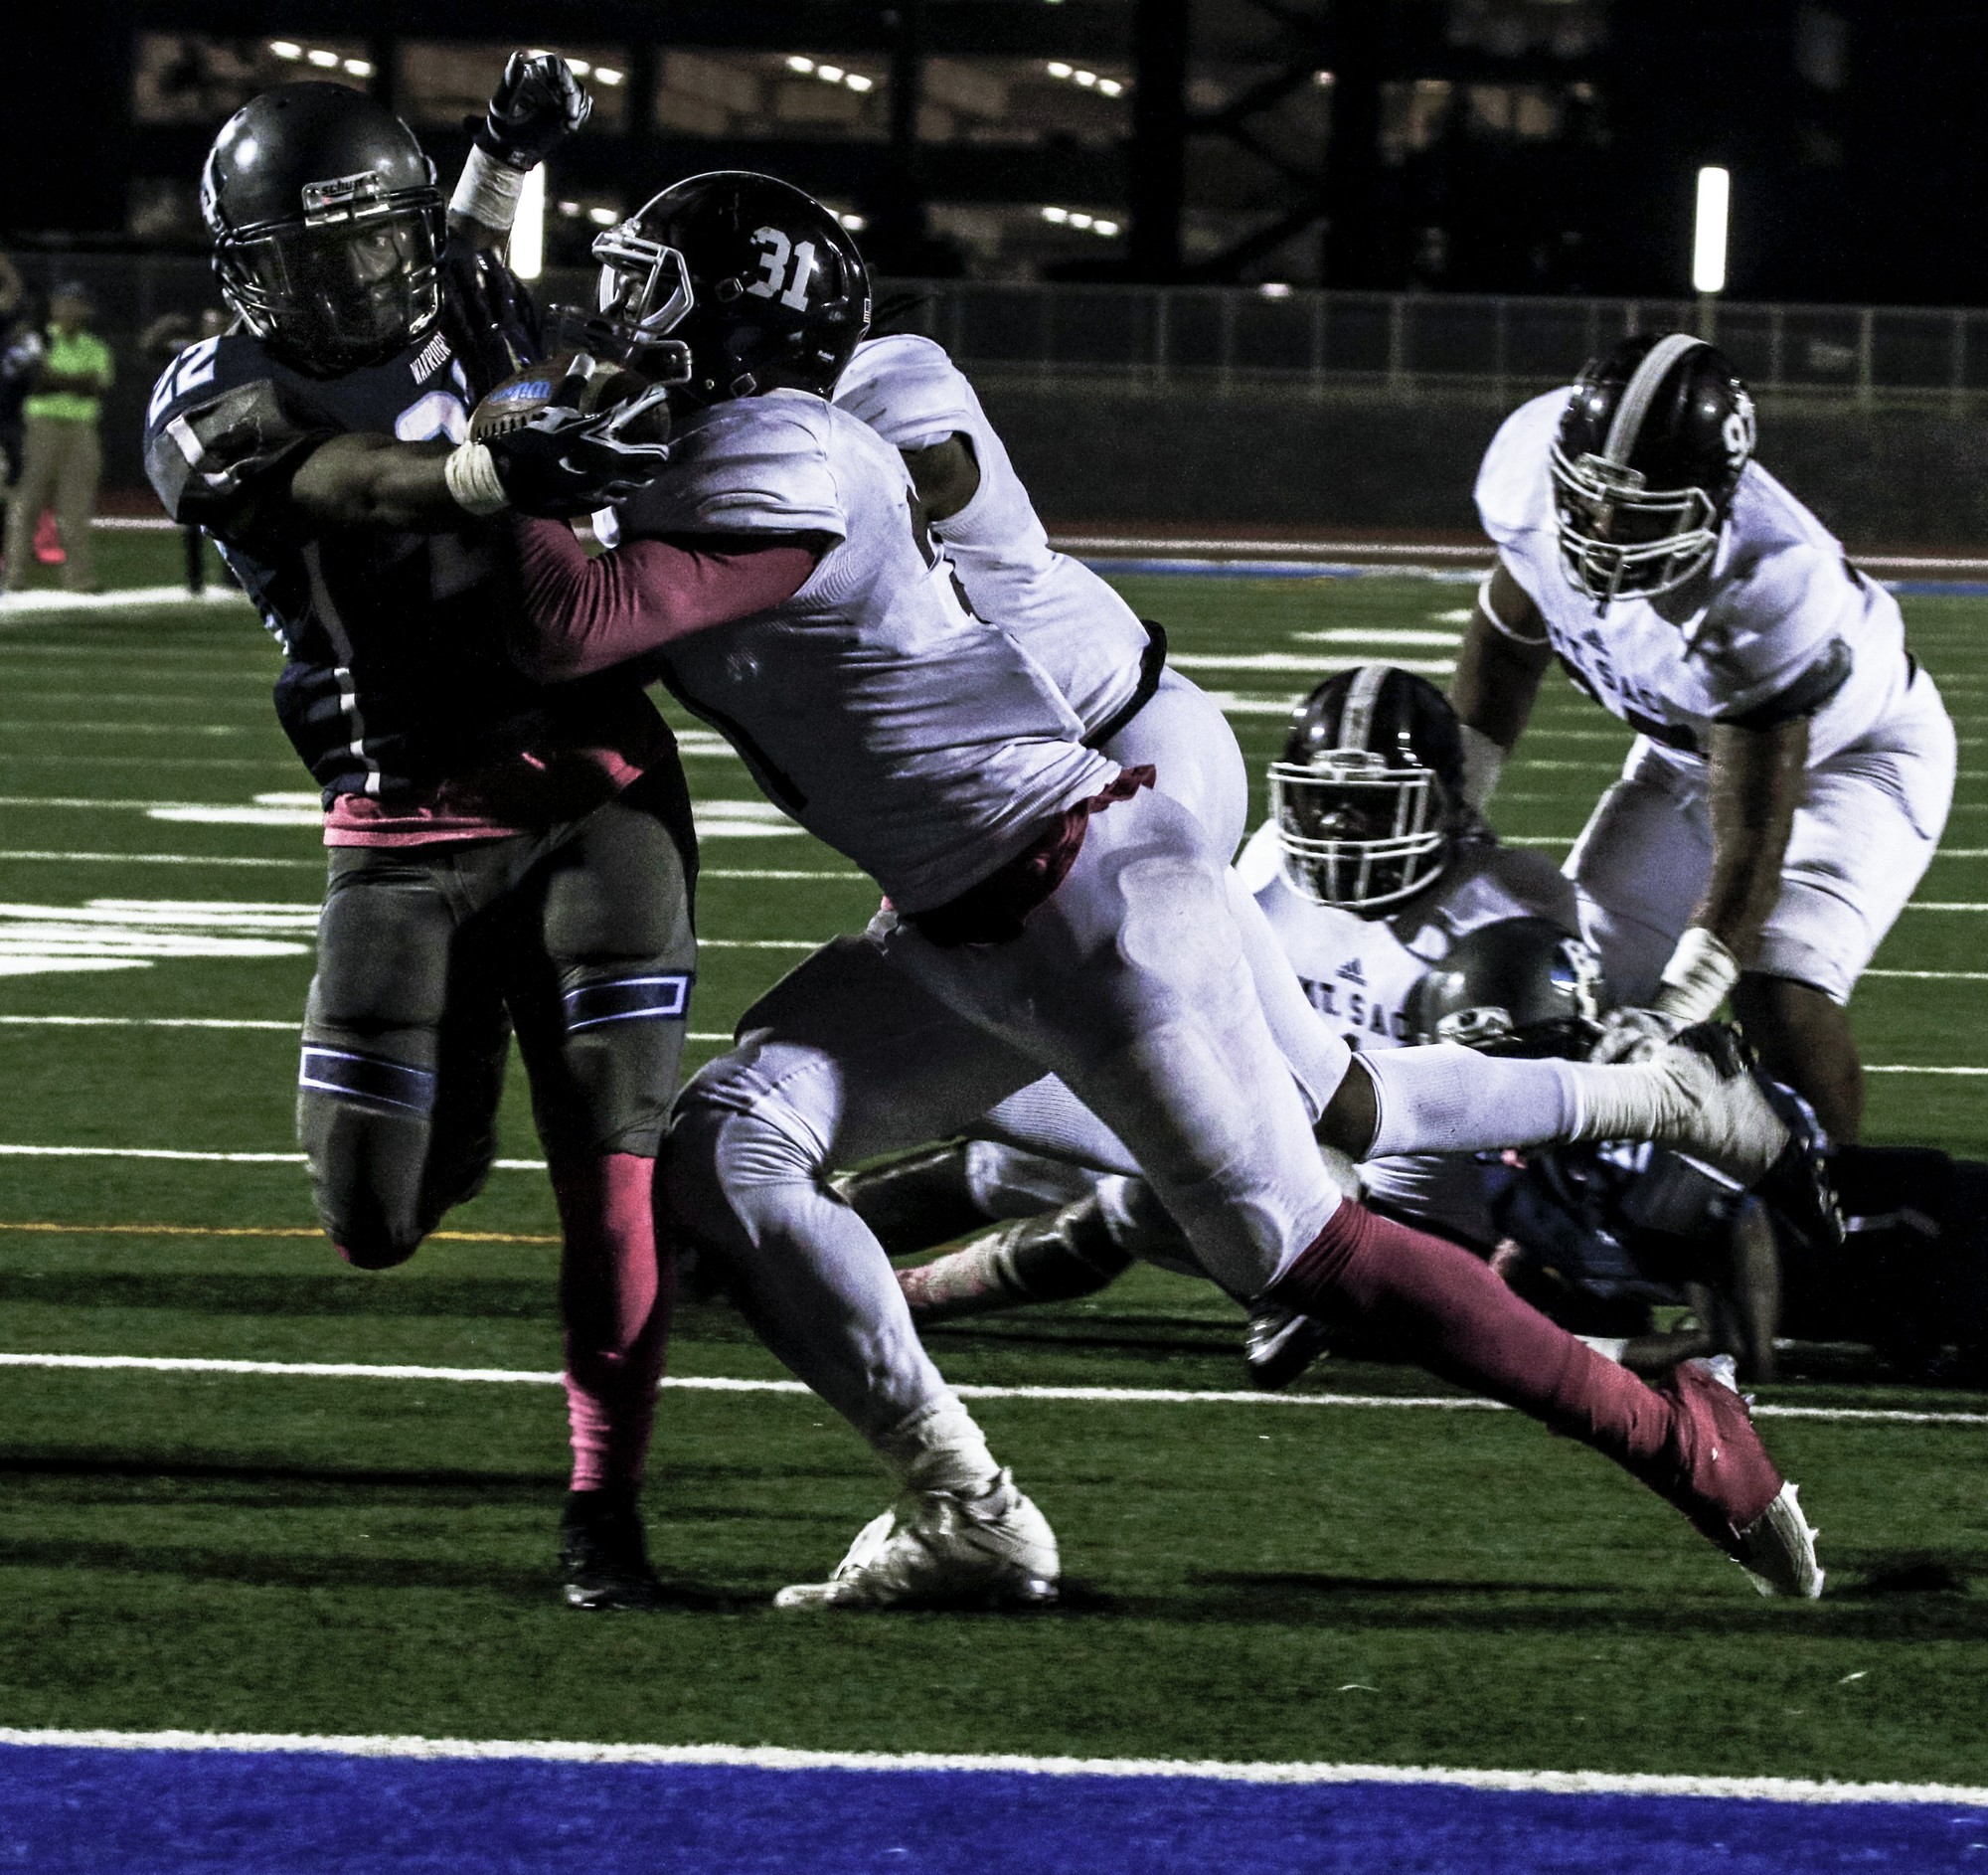 El Camino running back Donovan Davis (No. 22) runs the ball into the end zone for a touchdown during the game against Mt. SAC on Saturday Oct. 23 at El Camino. Photo credit: Jacquelyn  Romano